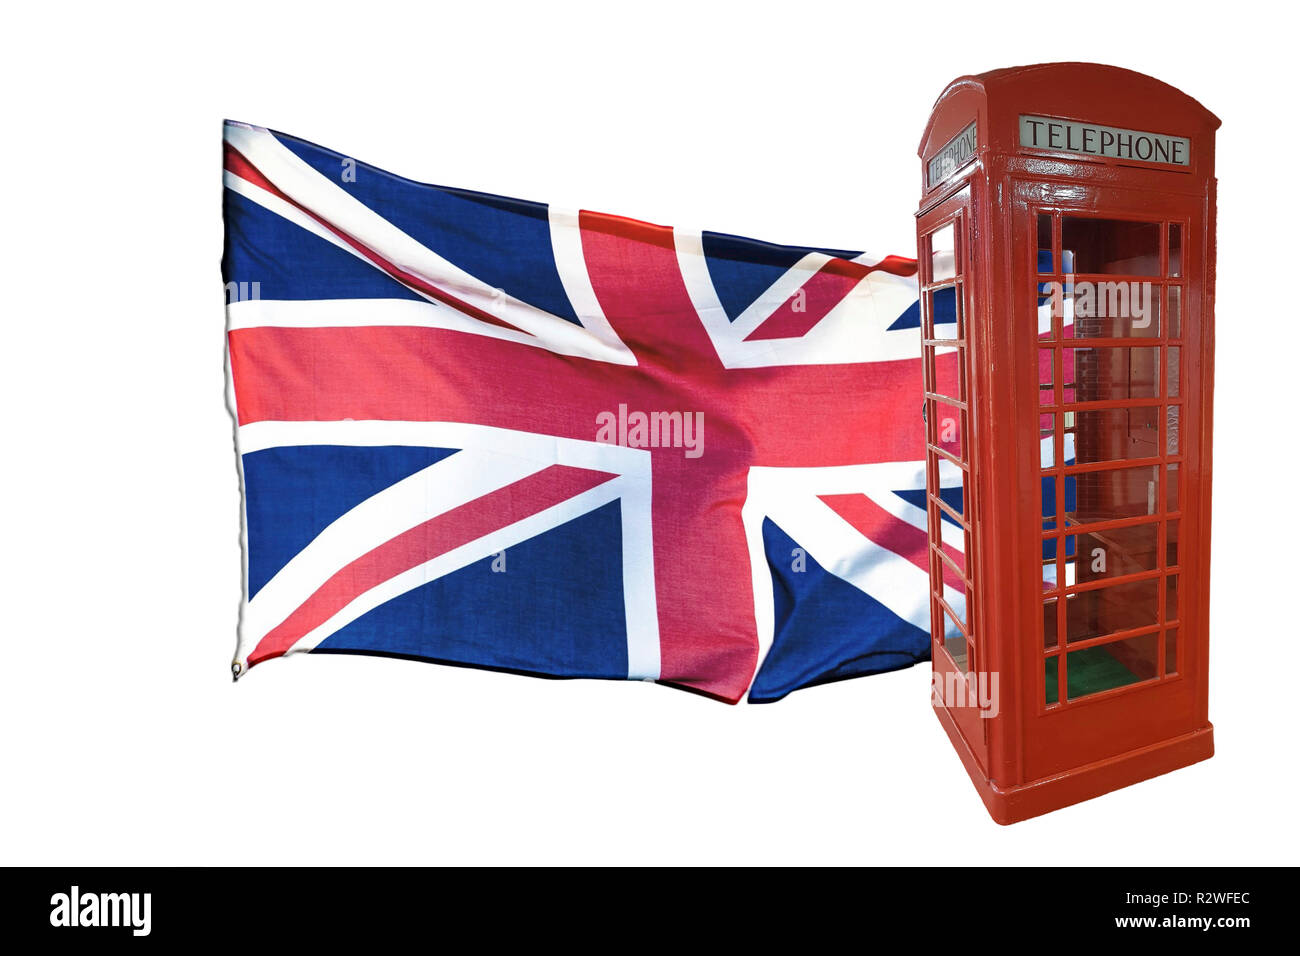 British flag and red telephone box. Isolated white background. Comet travel to the UK - Stock Image